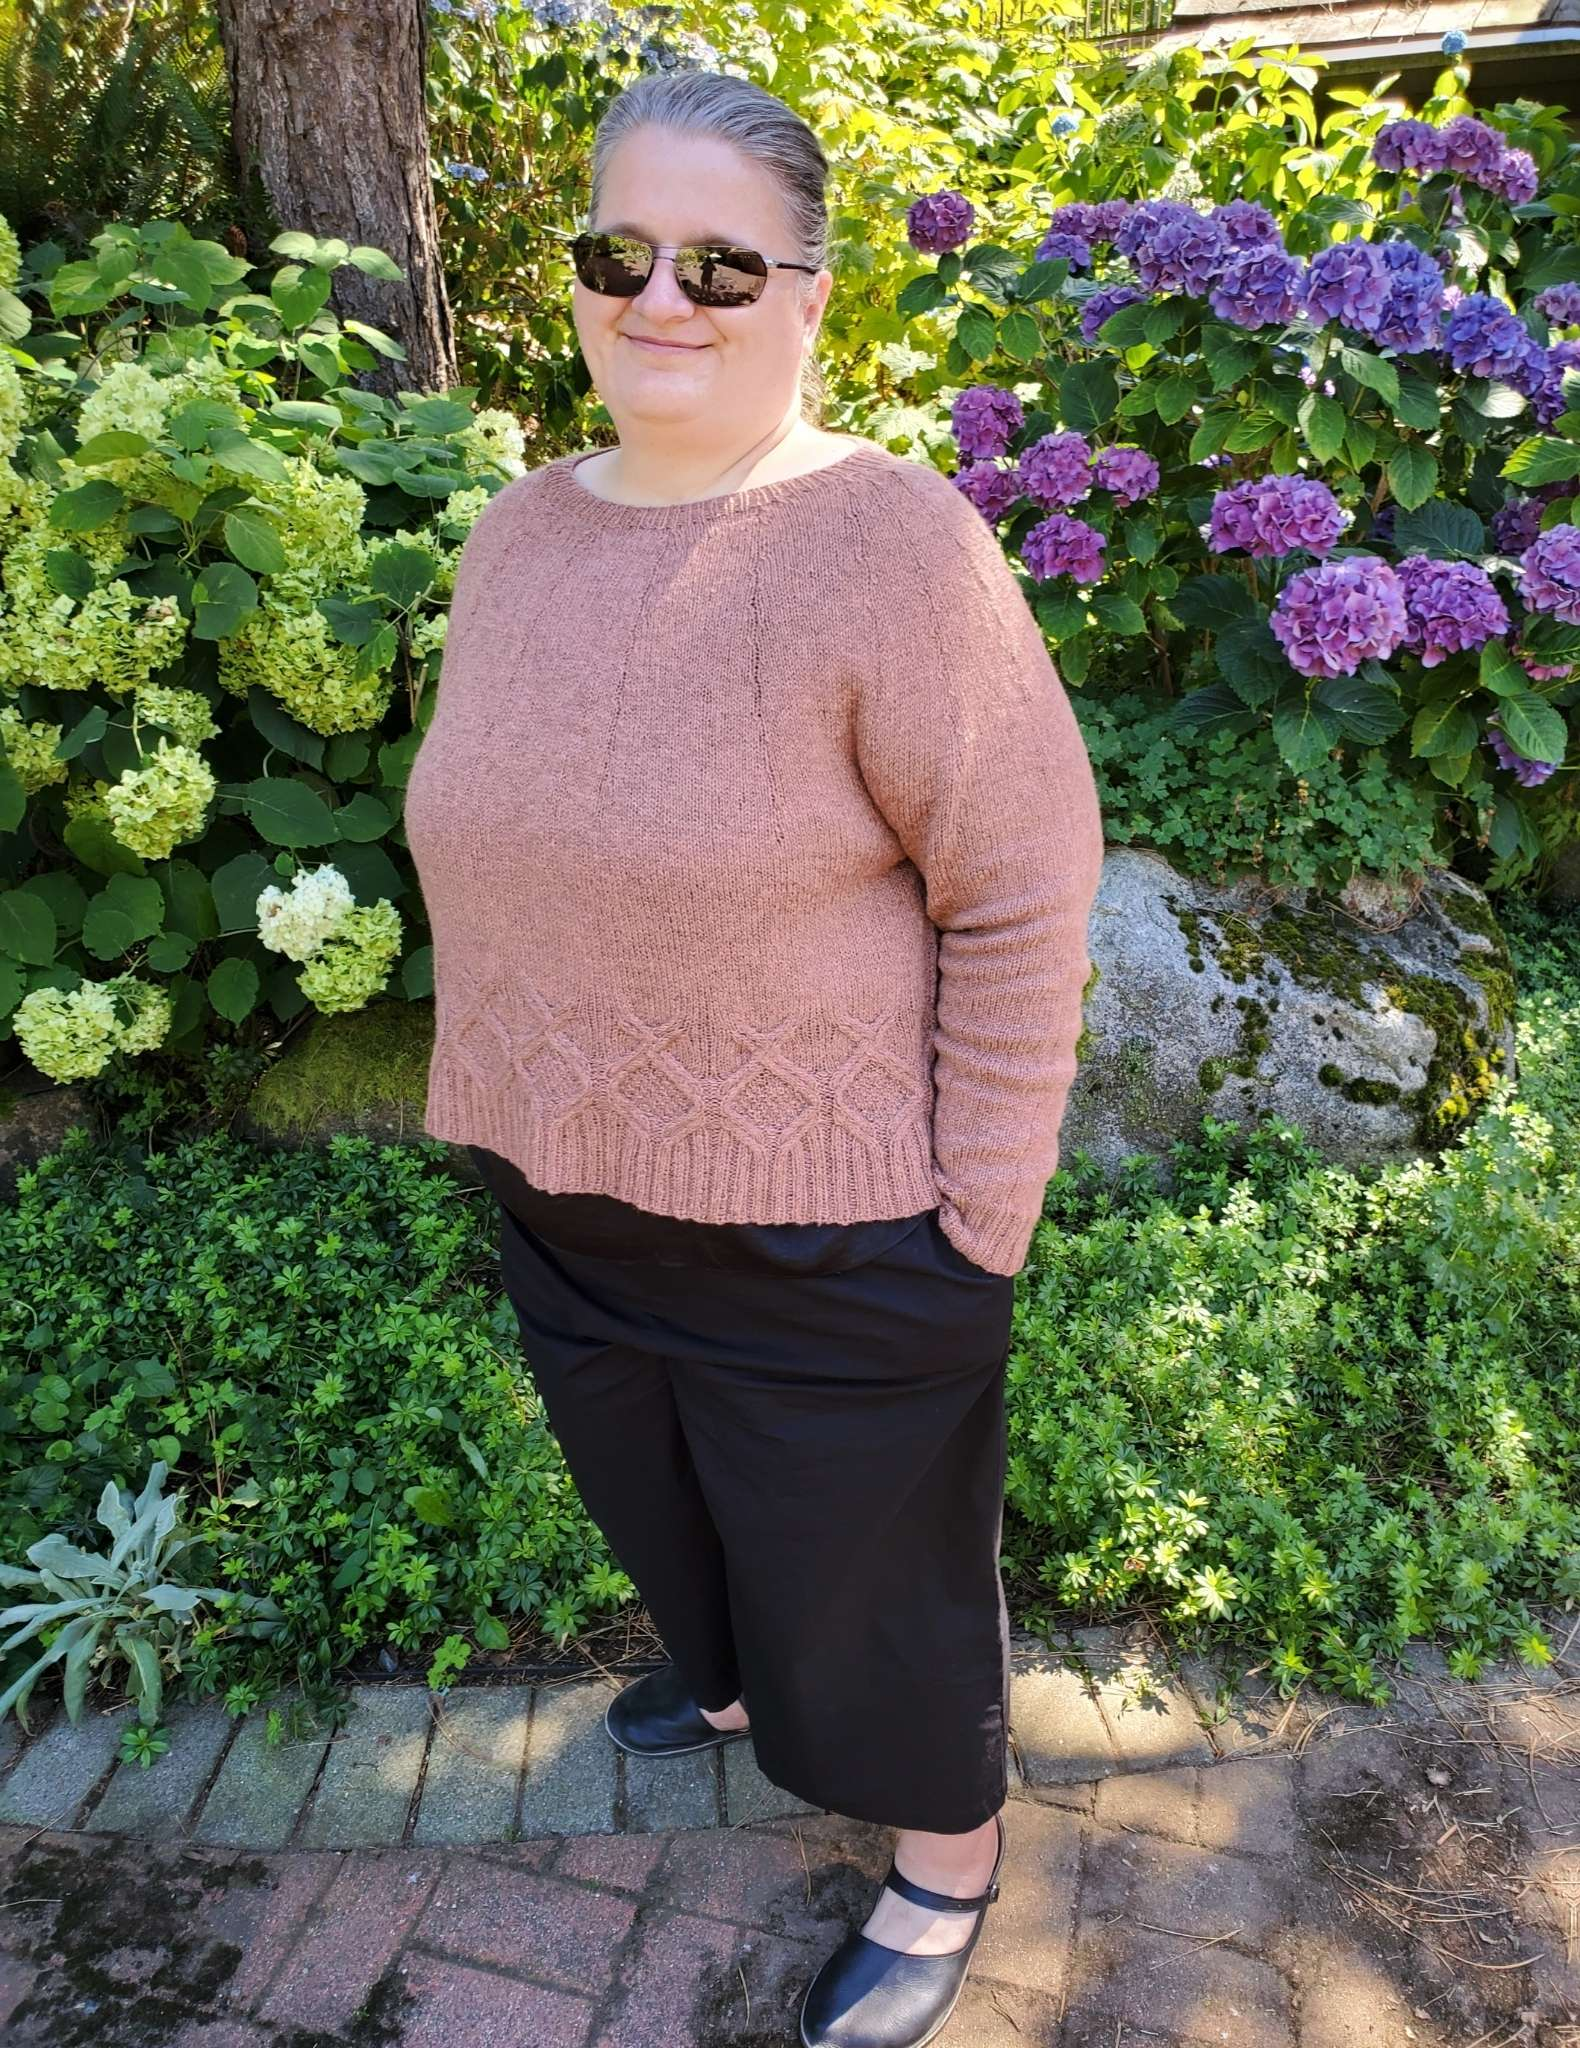 a model in a pale cropped cabled sweater standing in a garden next to flowers